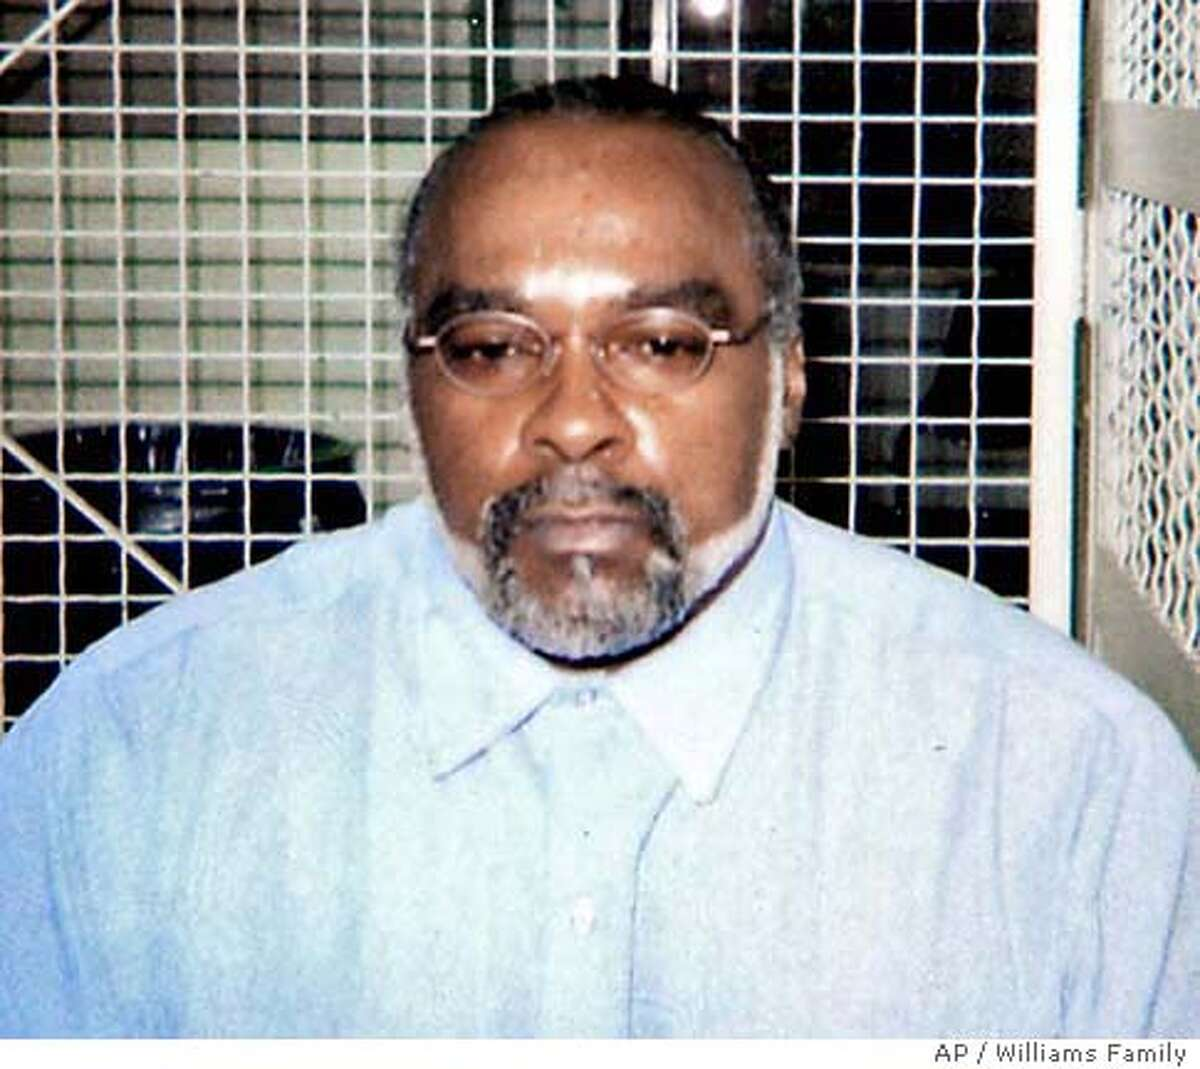 """** FILE ** In this undated photo provided by the family of Stanley Williams, Stanley """"Tookie"""" Williams poses for a photo in the visiting area of San Quentin State Prison in California. Prosecutors asked the California Supreme Court on Sunday, Dec. 11, 2005 to reject former gang leader and convicted killer Williams' request to block his execution, set for early Tuesday. (AP Photo/Courtesy of Williams Family, File) UNDATED HANDOUT"""